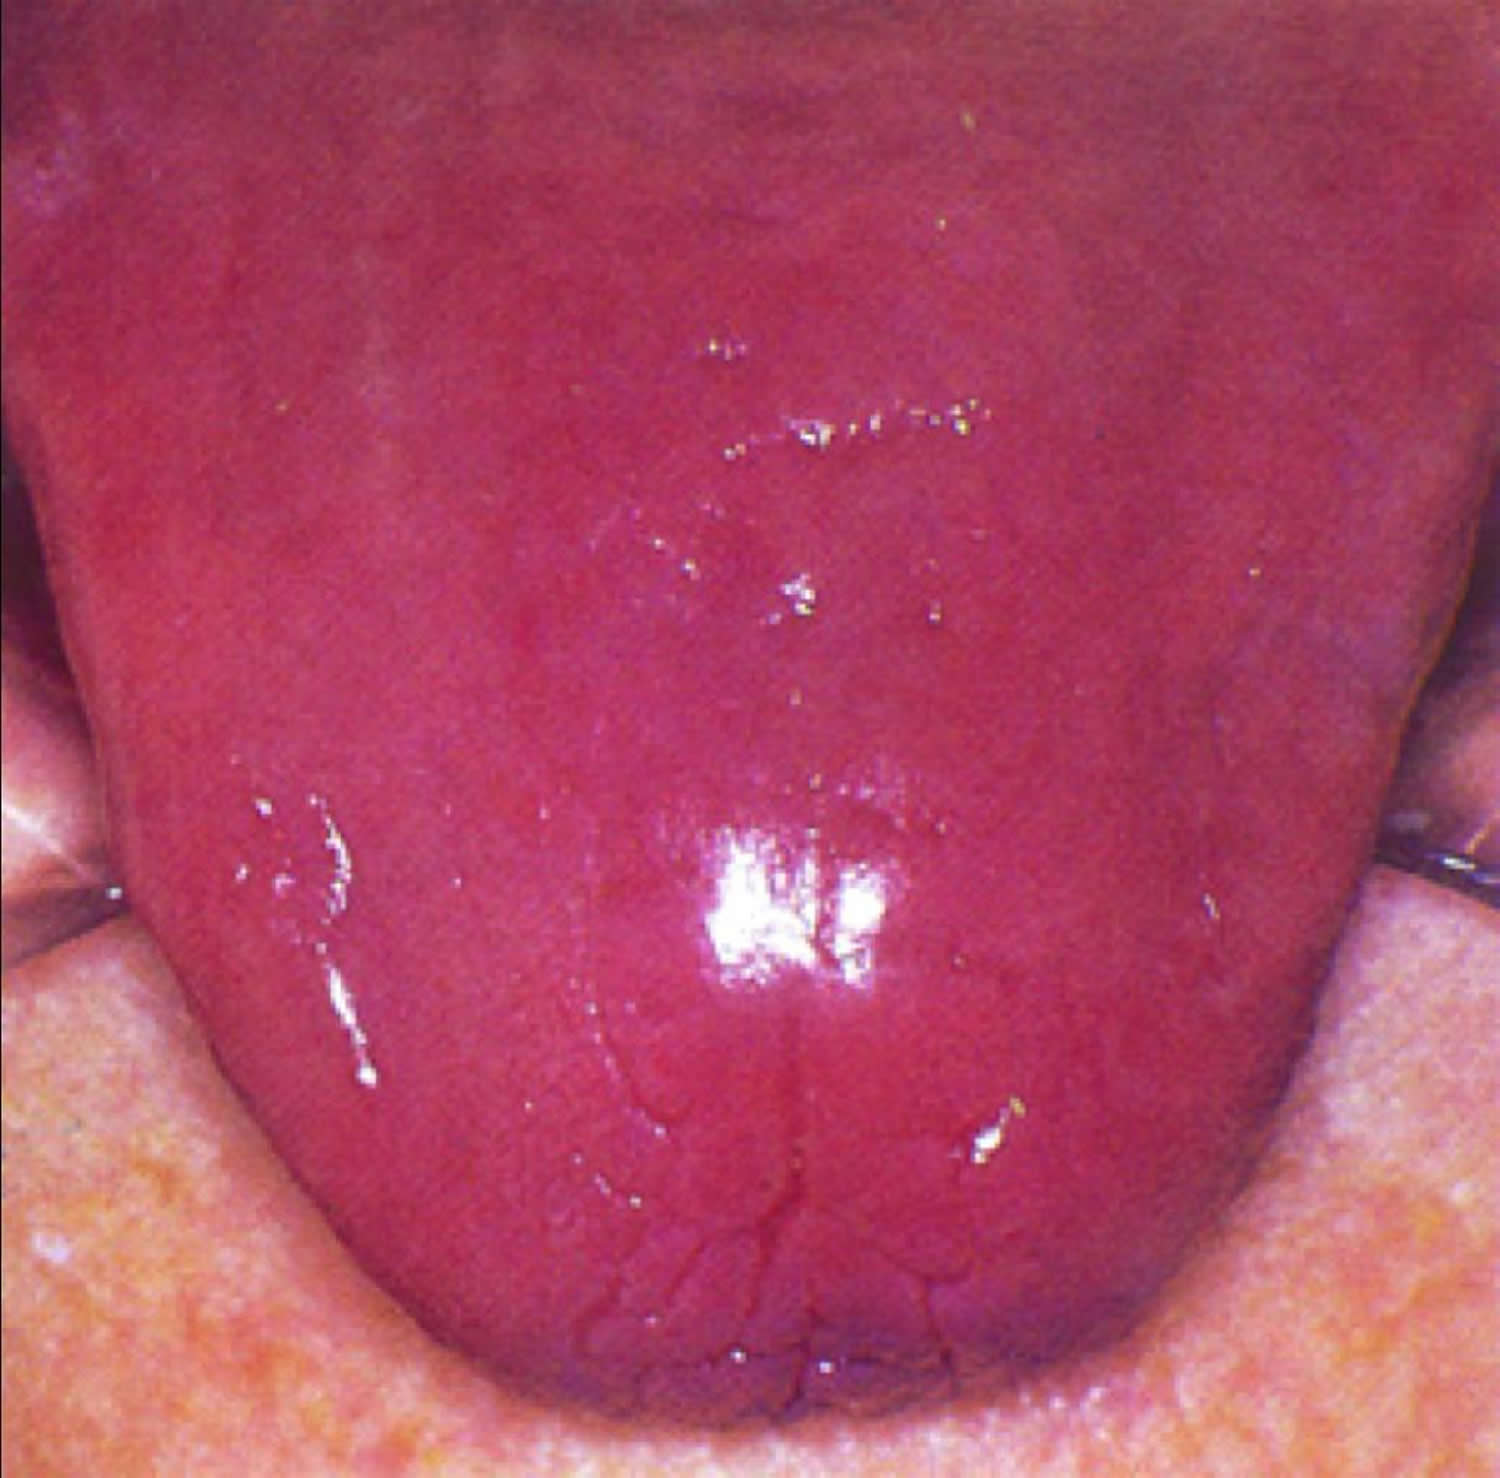 Pernicious Anemia - Causes, Signs, Symptoms, Treatment B12 Deficiency Tongue